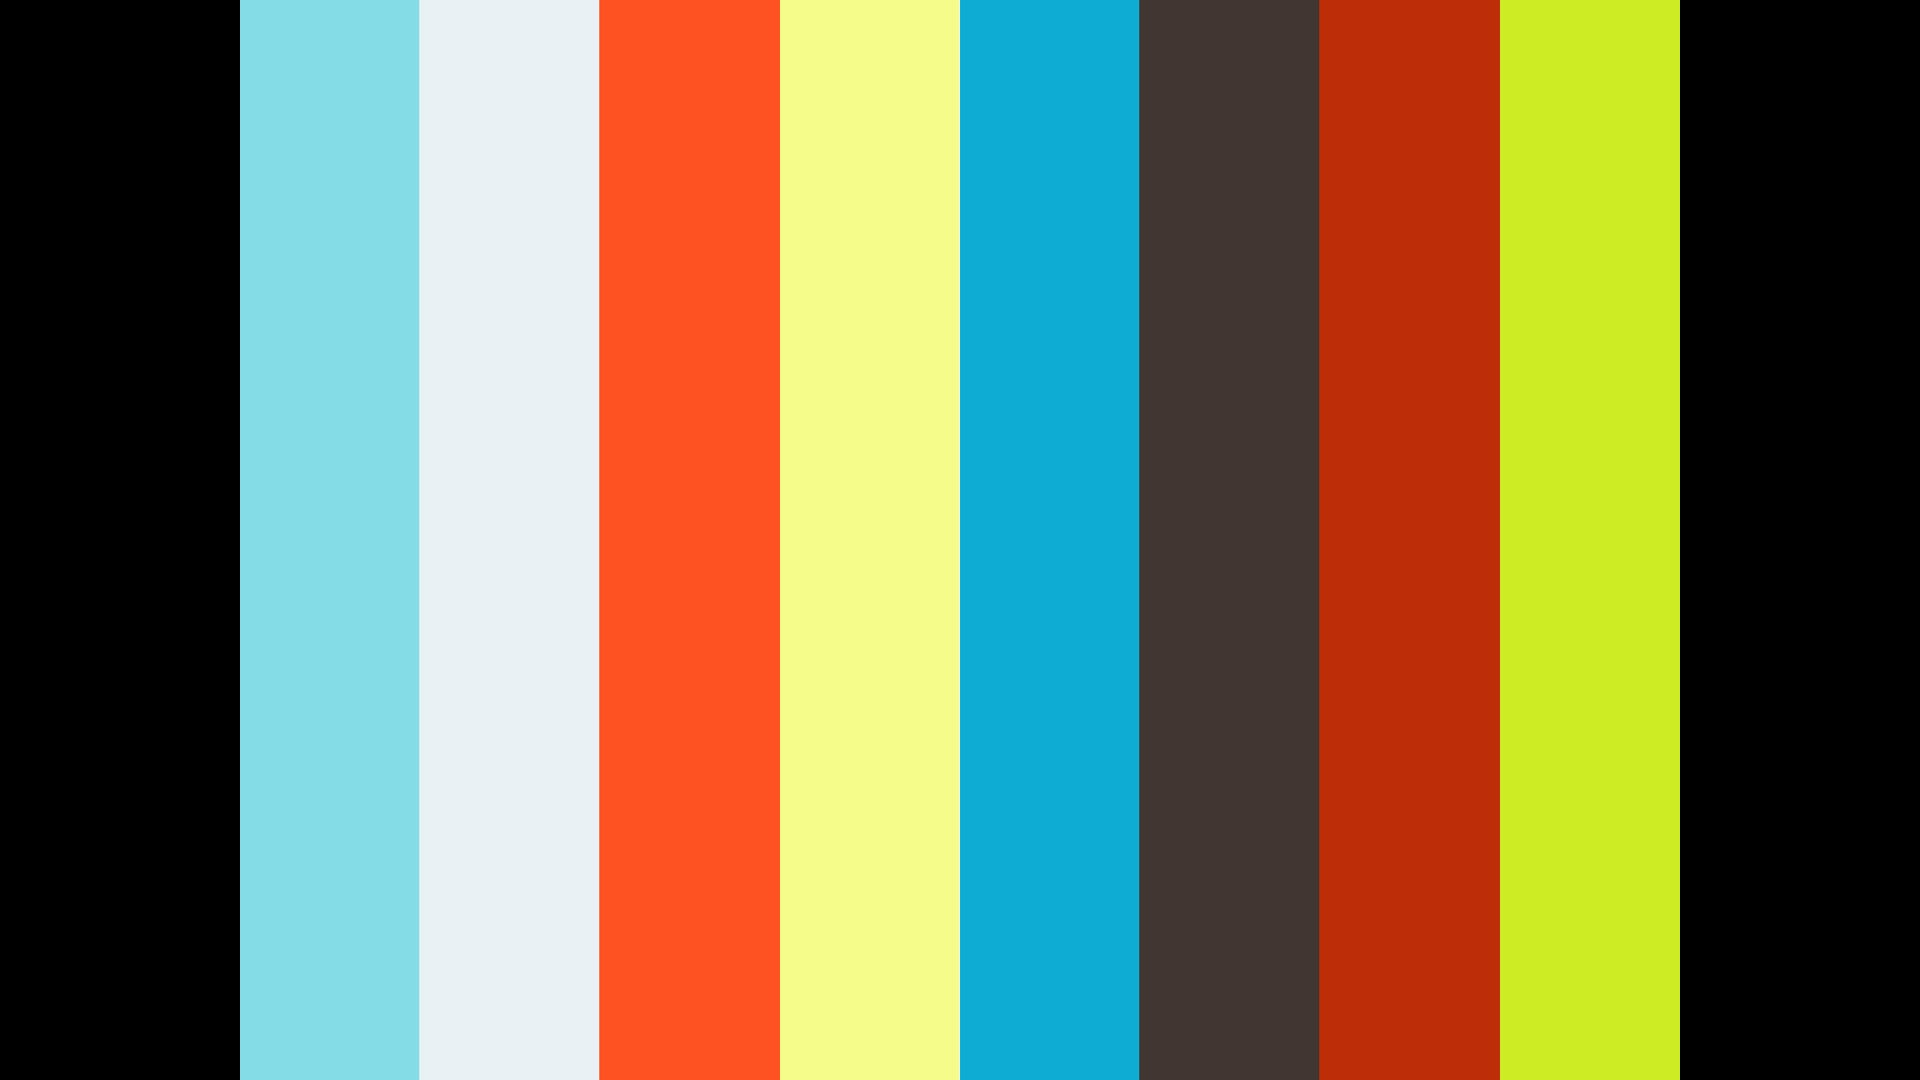 1 - Top 10 Risk List